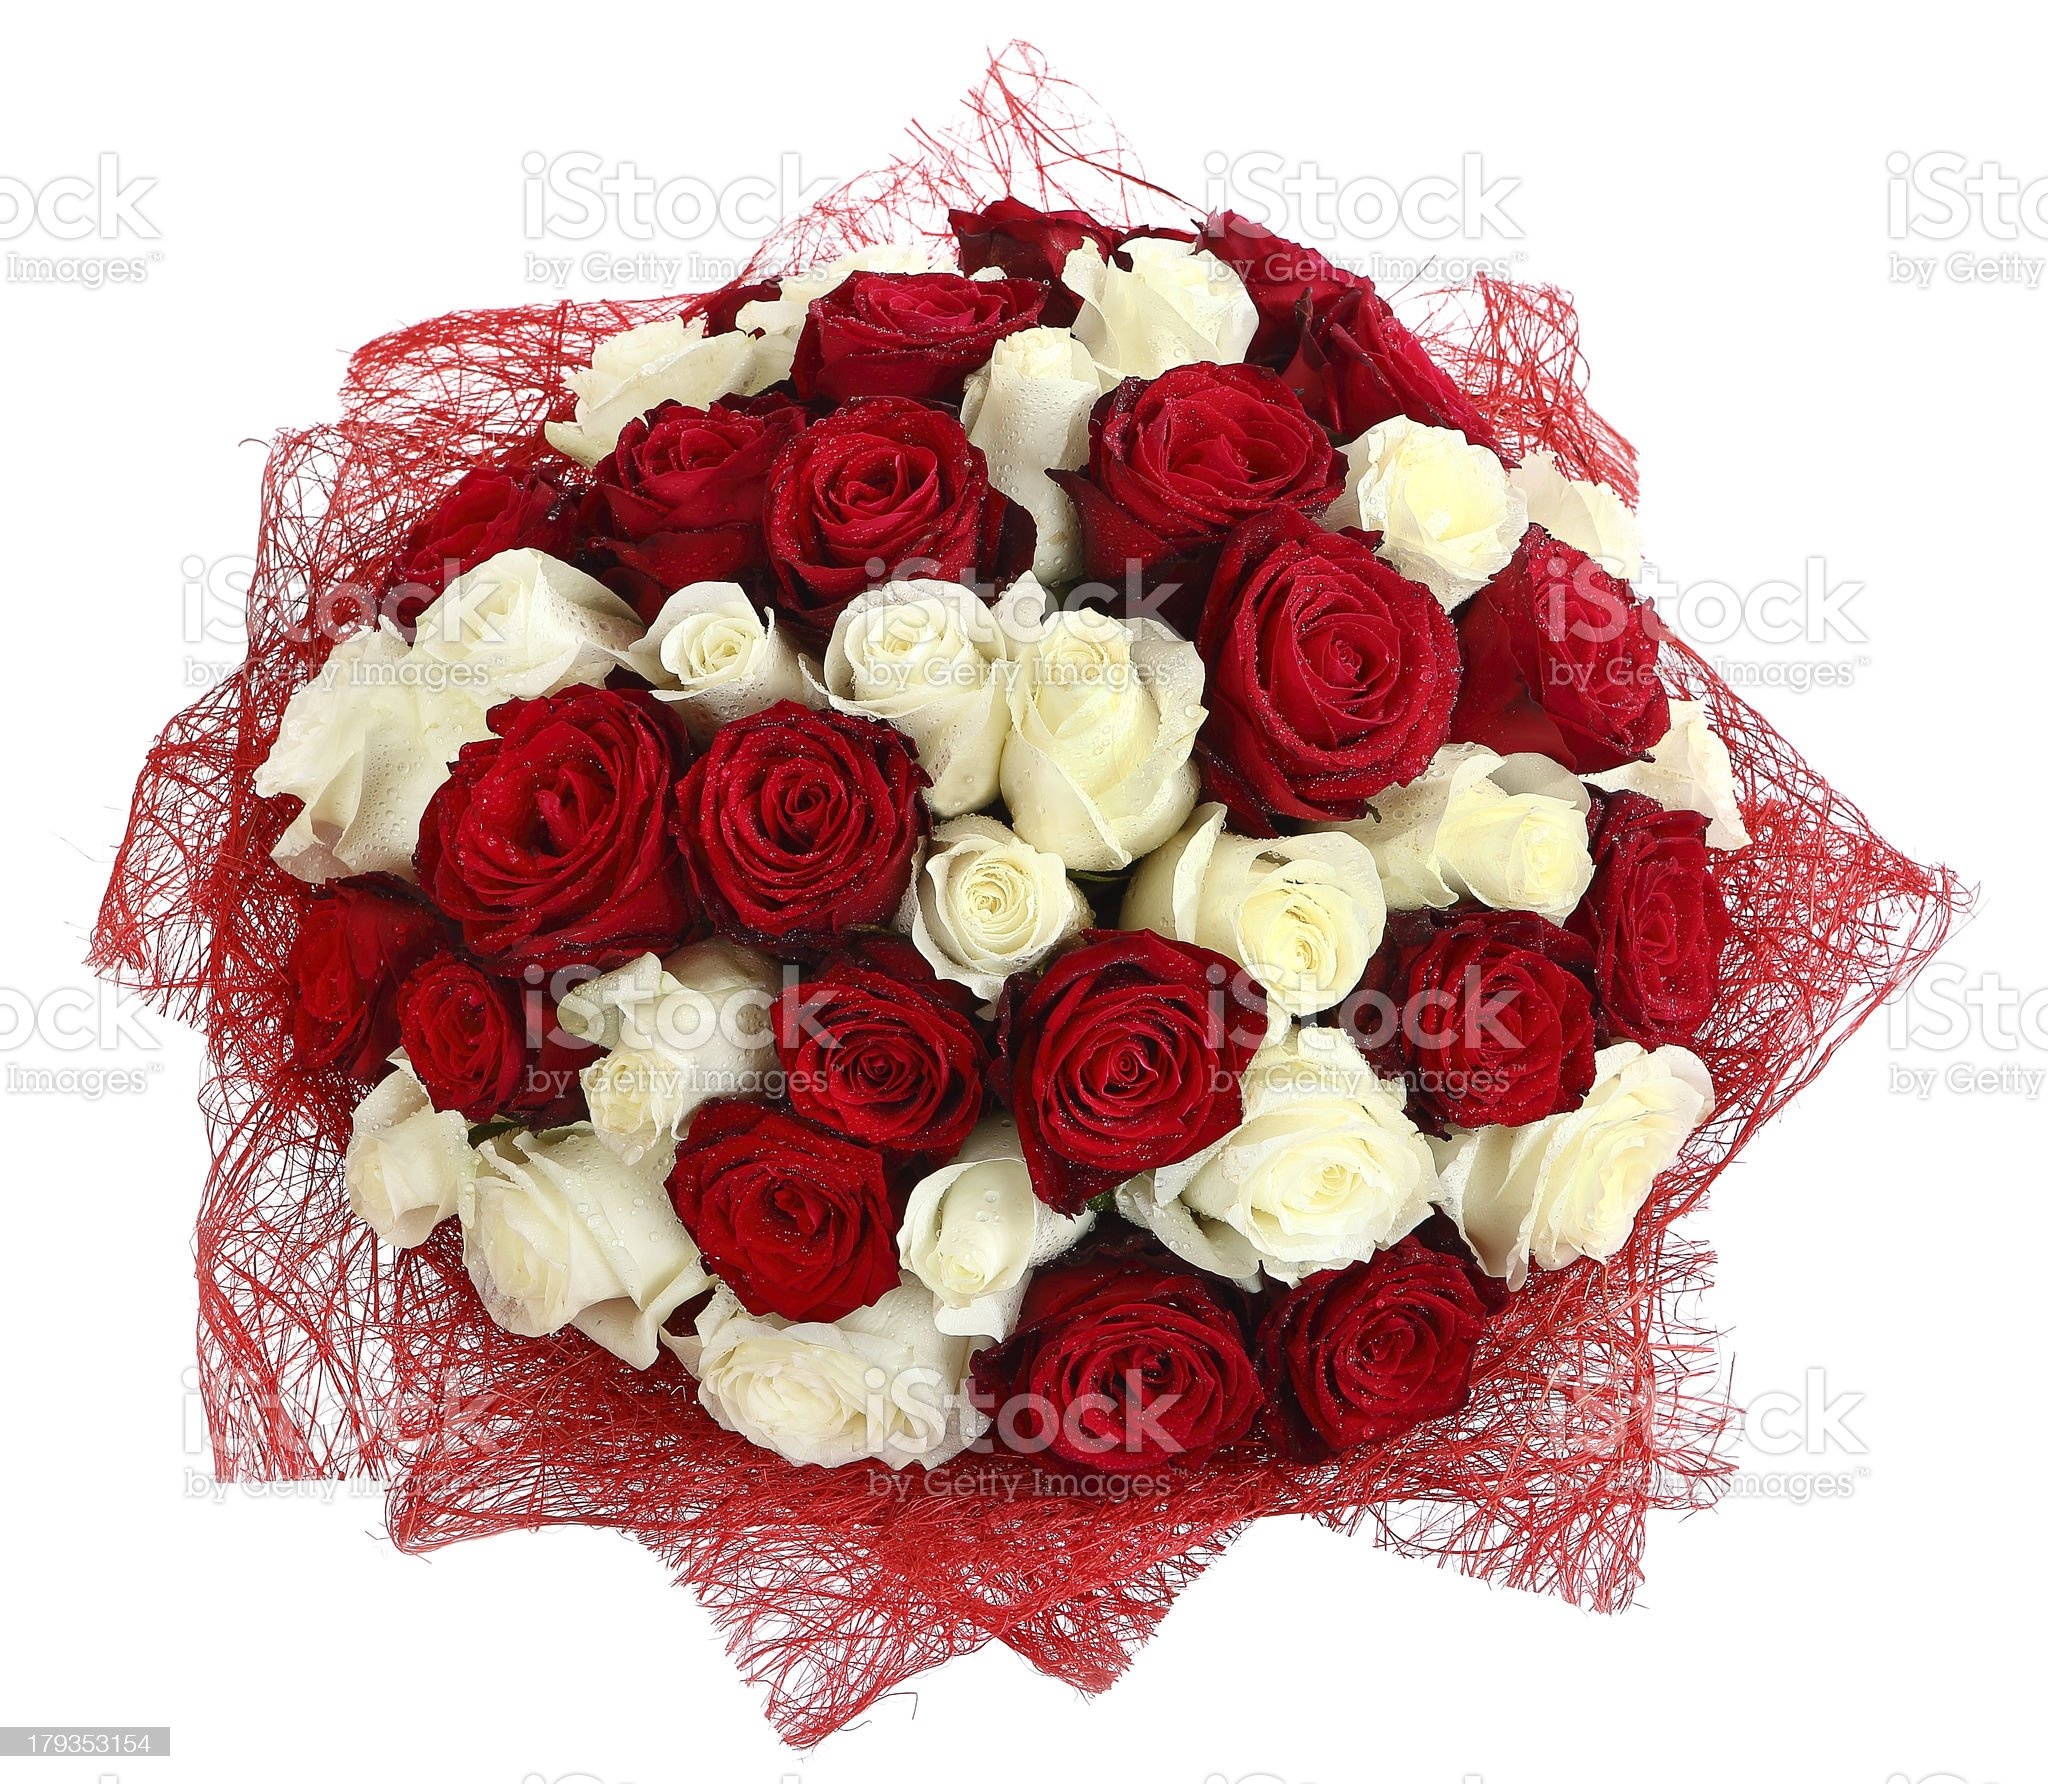 Floristic arrangement of white and red roses. Floral composition royalty-free stock photo